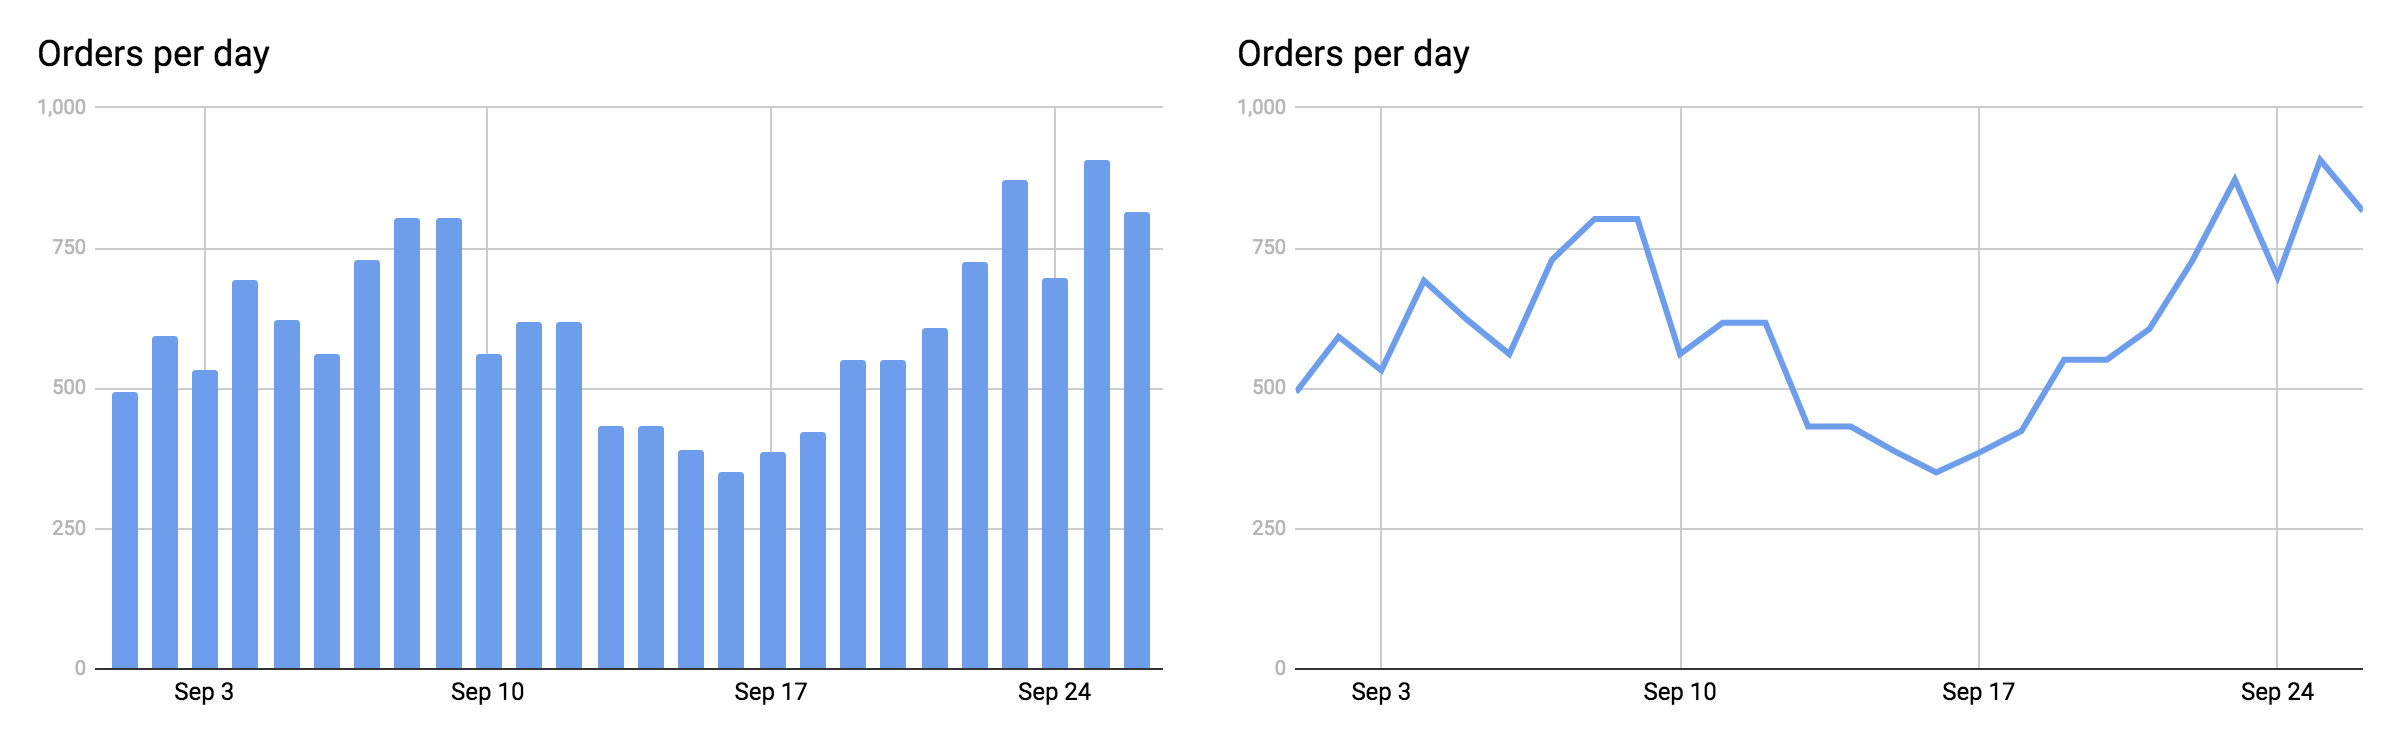 orders-per-day.png